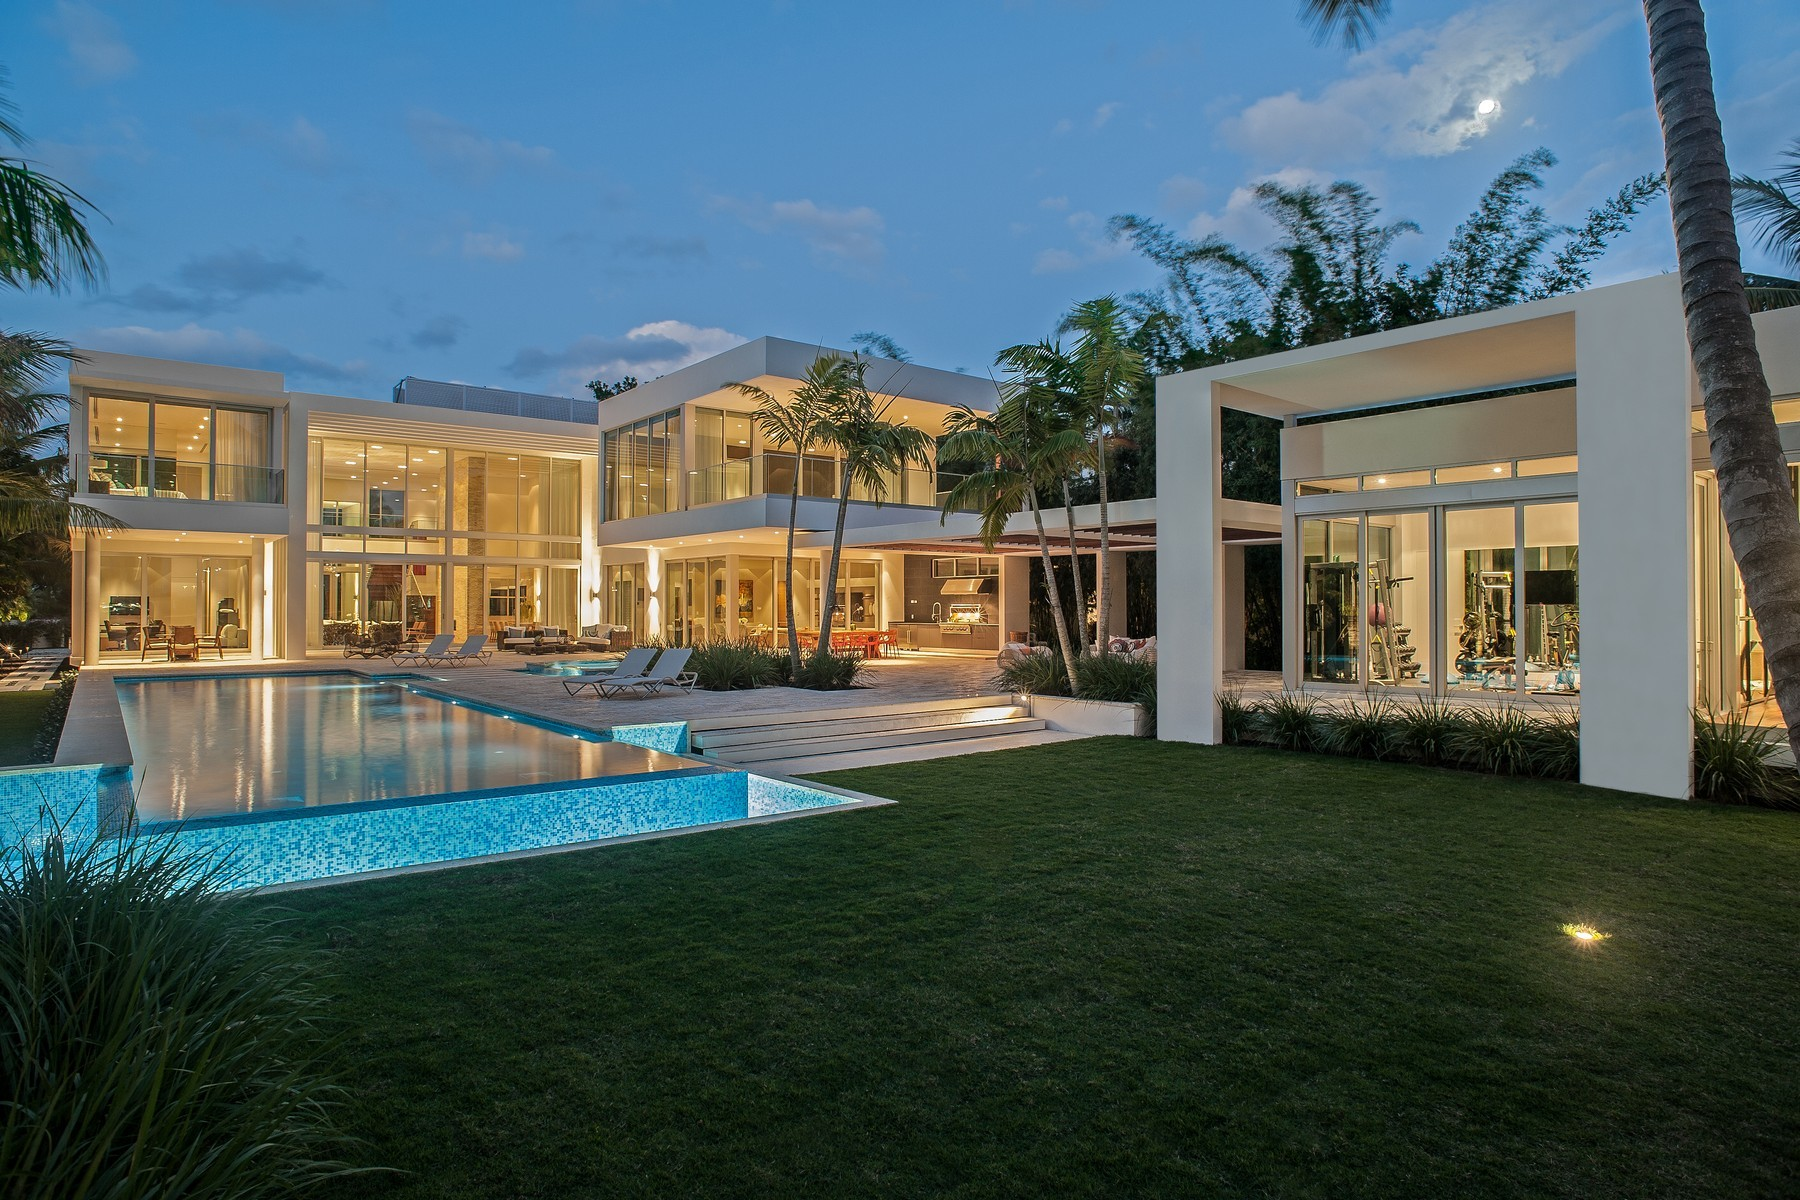 Breathtaking 8 bedroom 32 million miami mansion for sale for Florida estates for sale